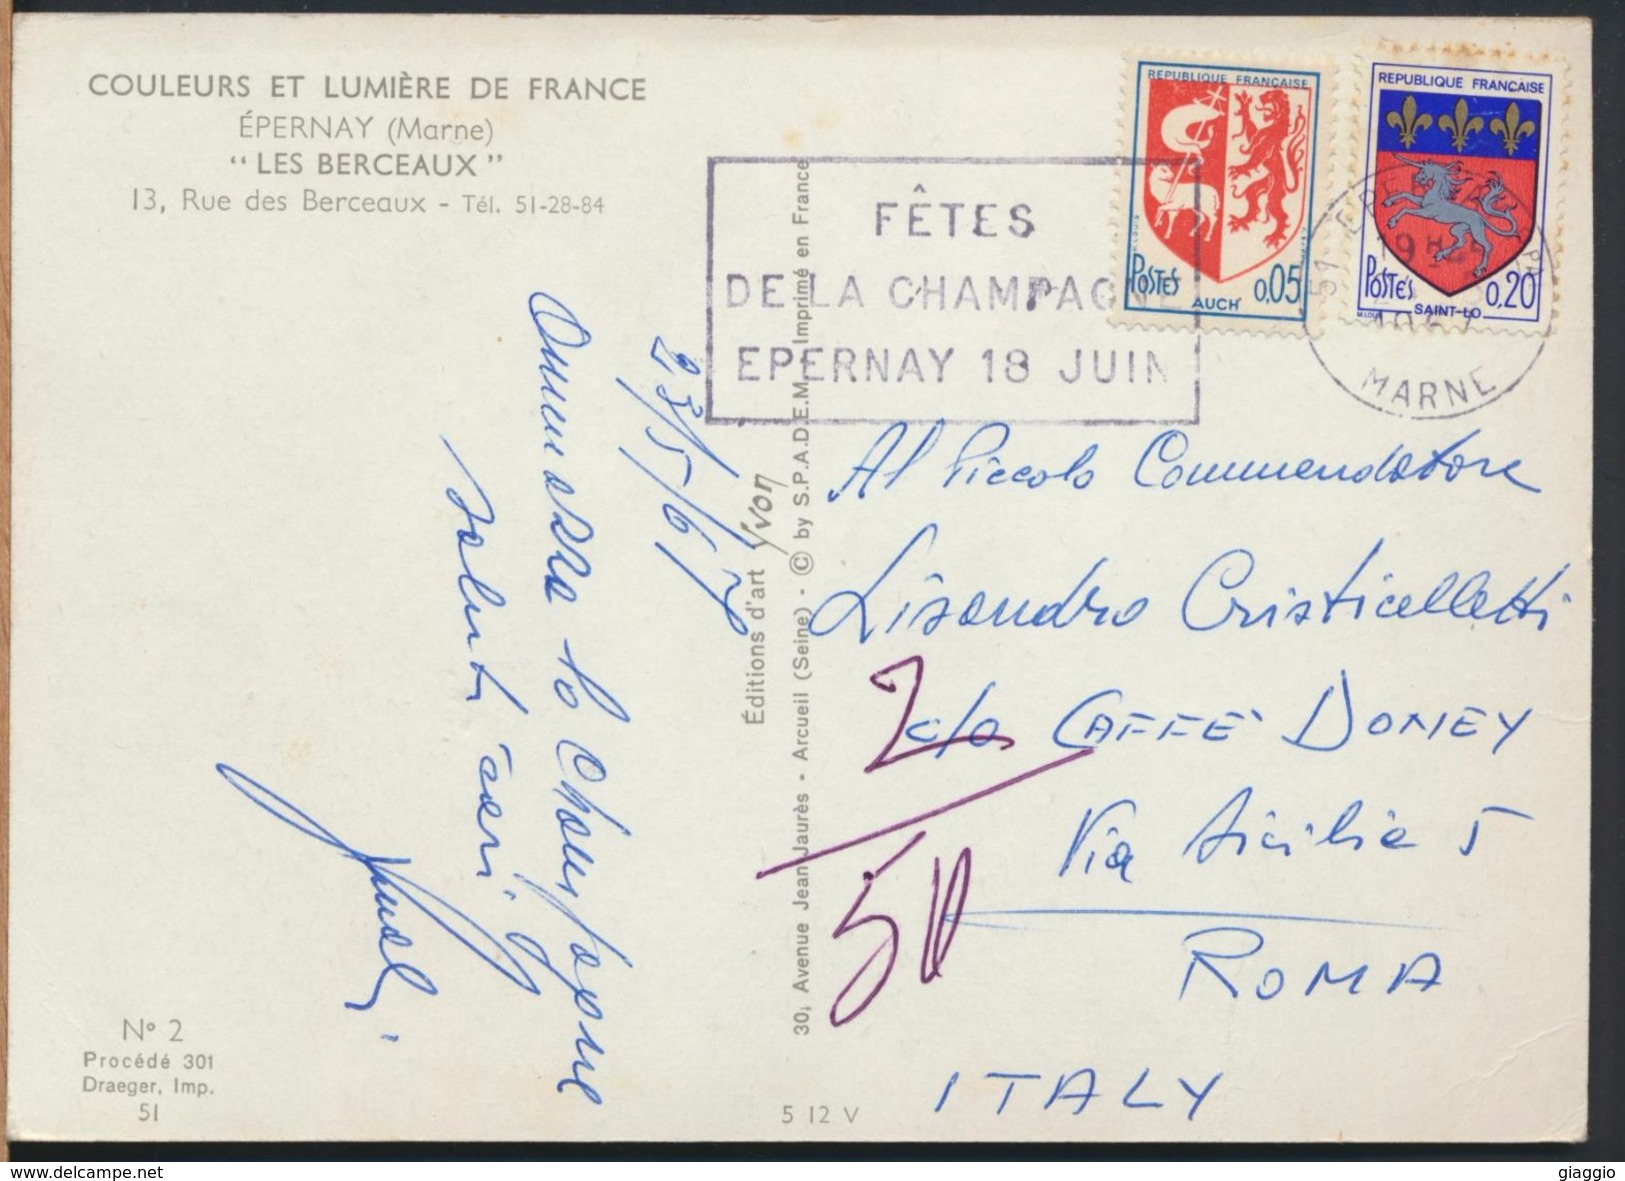 °°° 9520 - FRANCE - 51 - EPERNAY - LES BERCEAUX - 1967 With Stamps °°° - Epernay